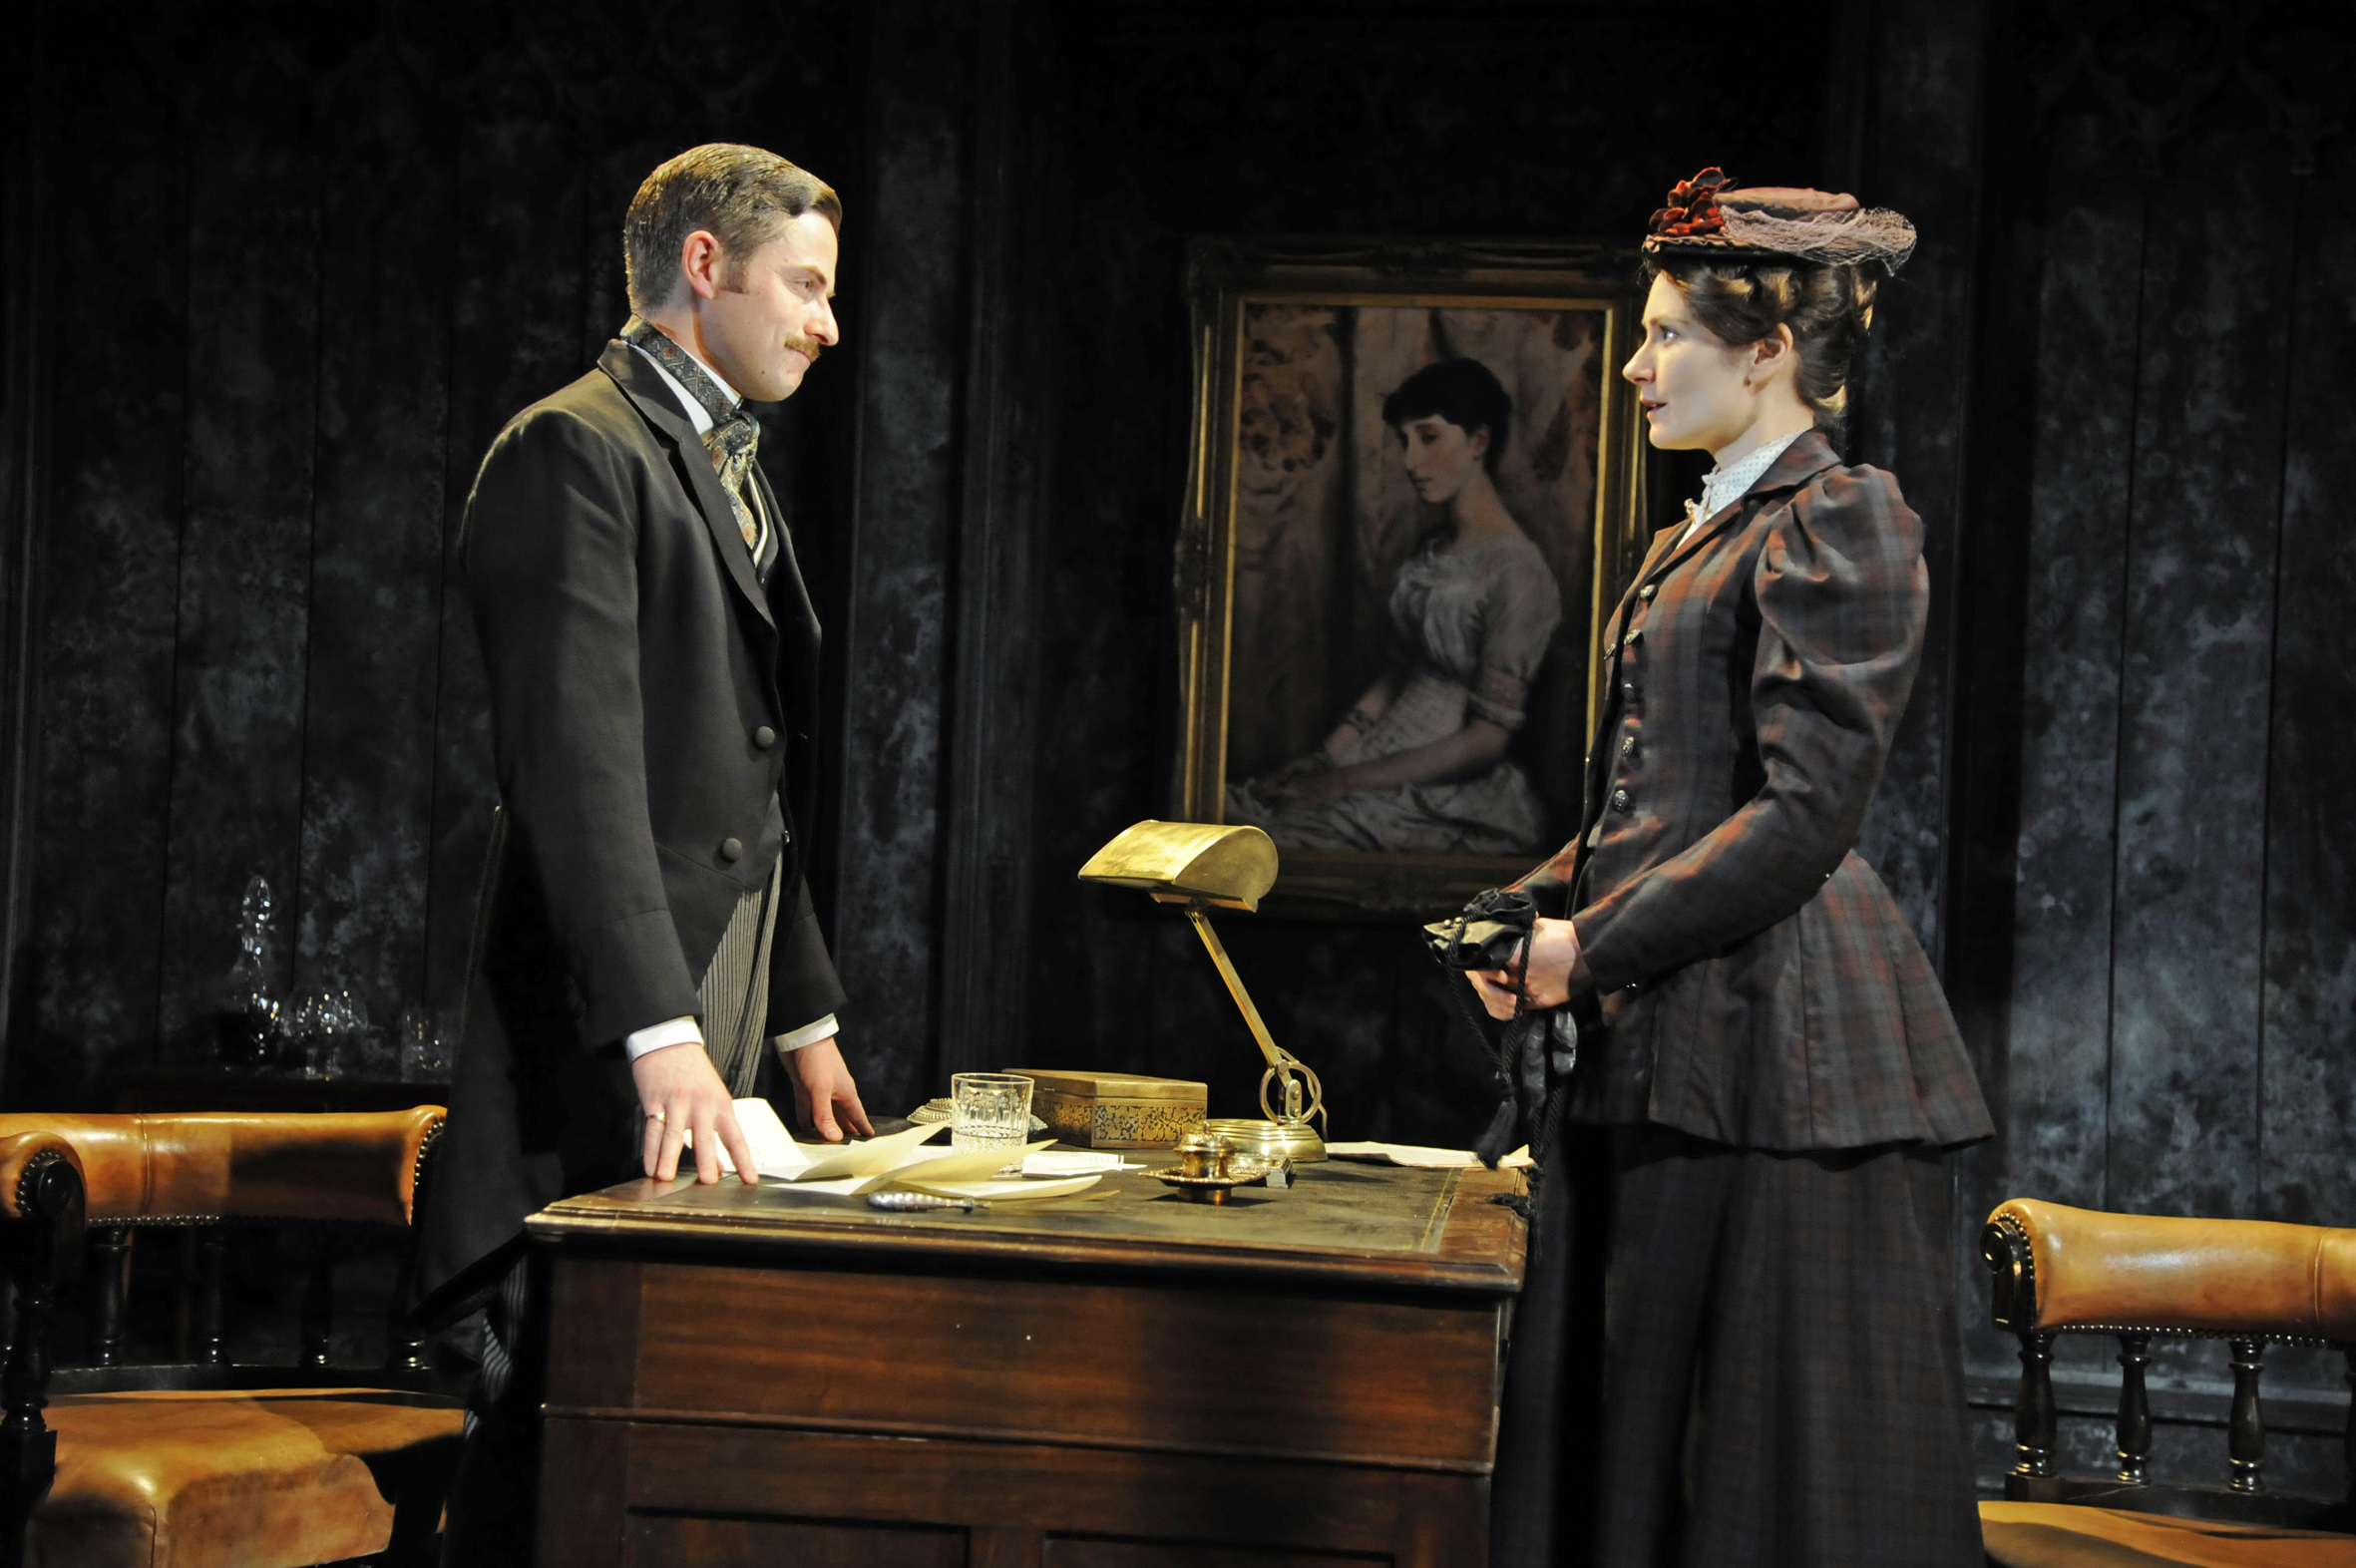 Orlando Wells (Sackville) and Anna Madeley (Governess) in The Turn of the Screw at the Almeida Theatre. Photo credit Nobby Clark